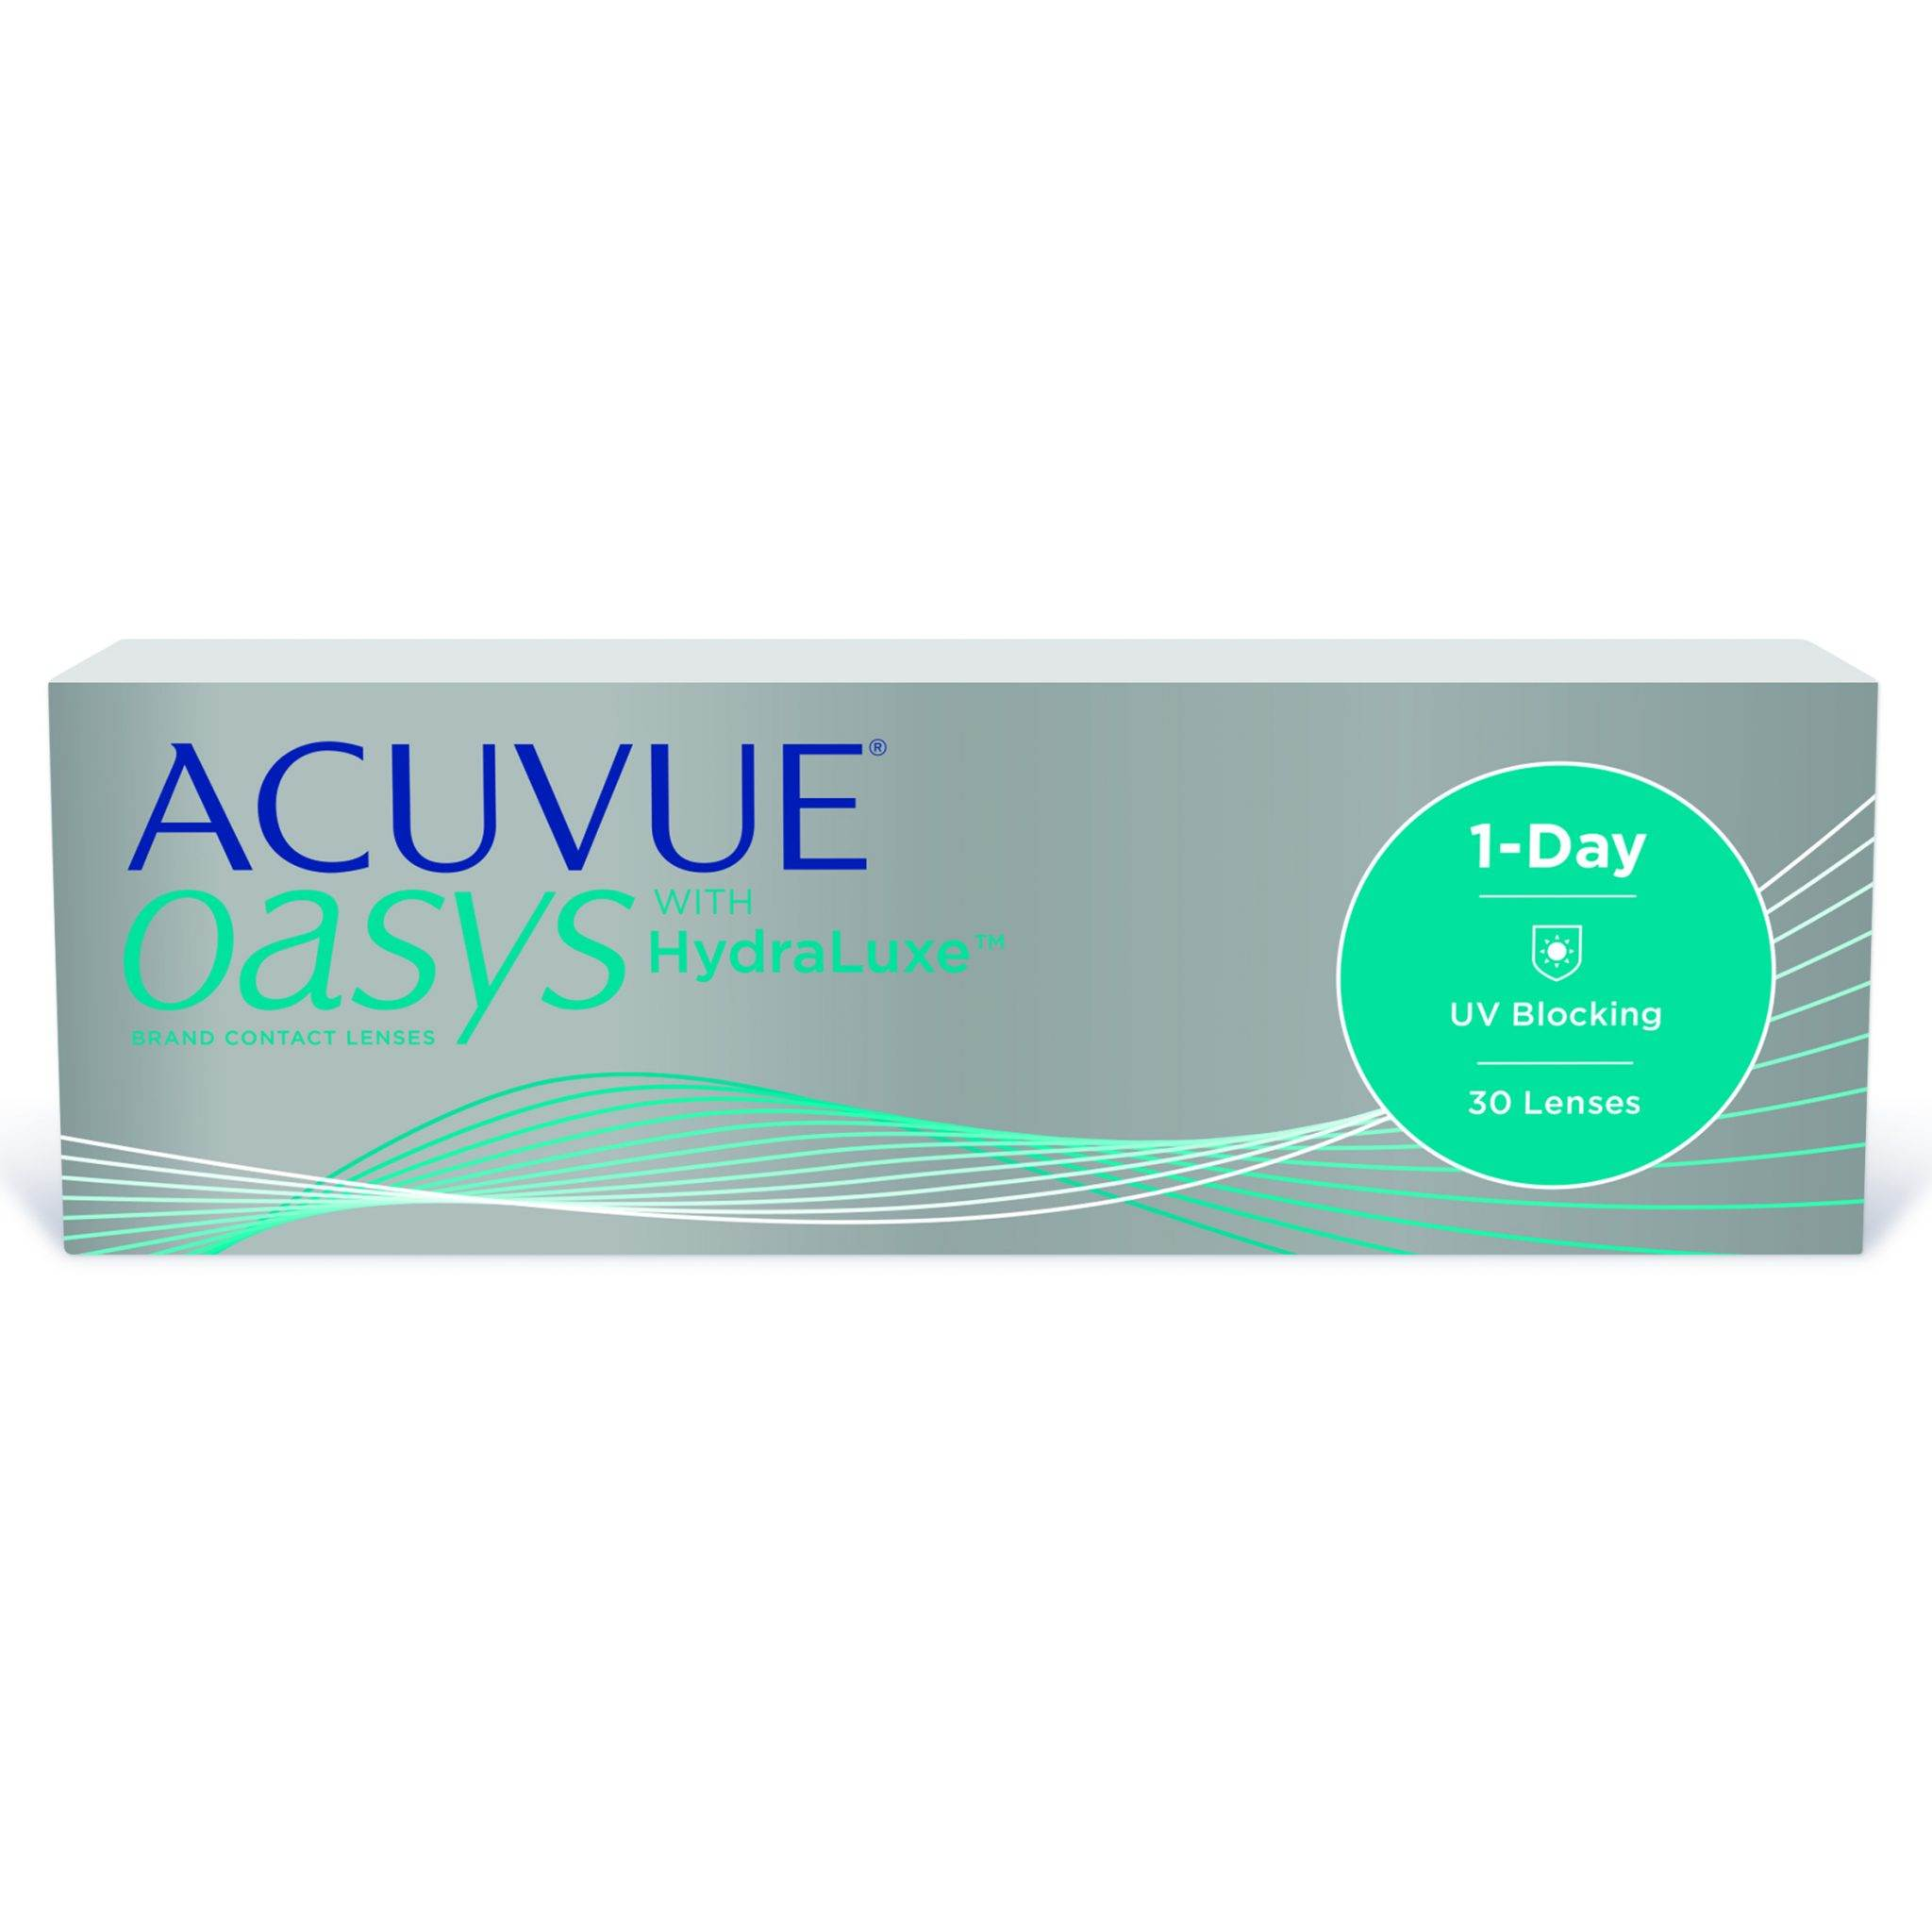 Acuvue Oasys with HydraLuxe(1 day)